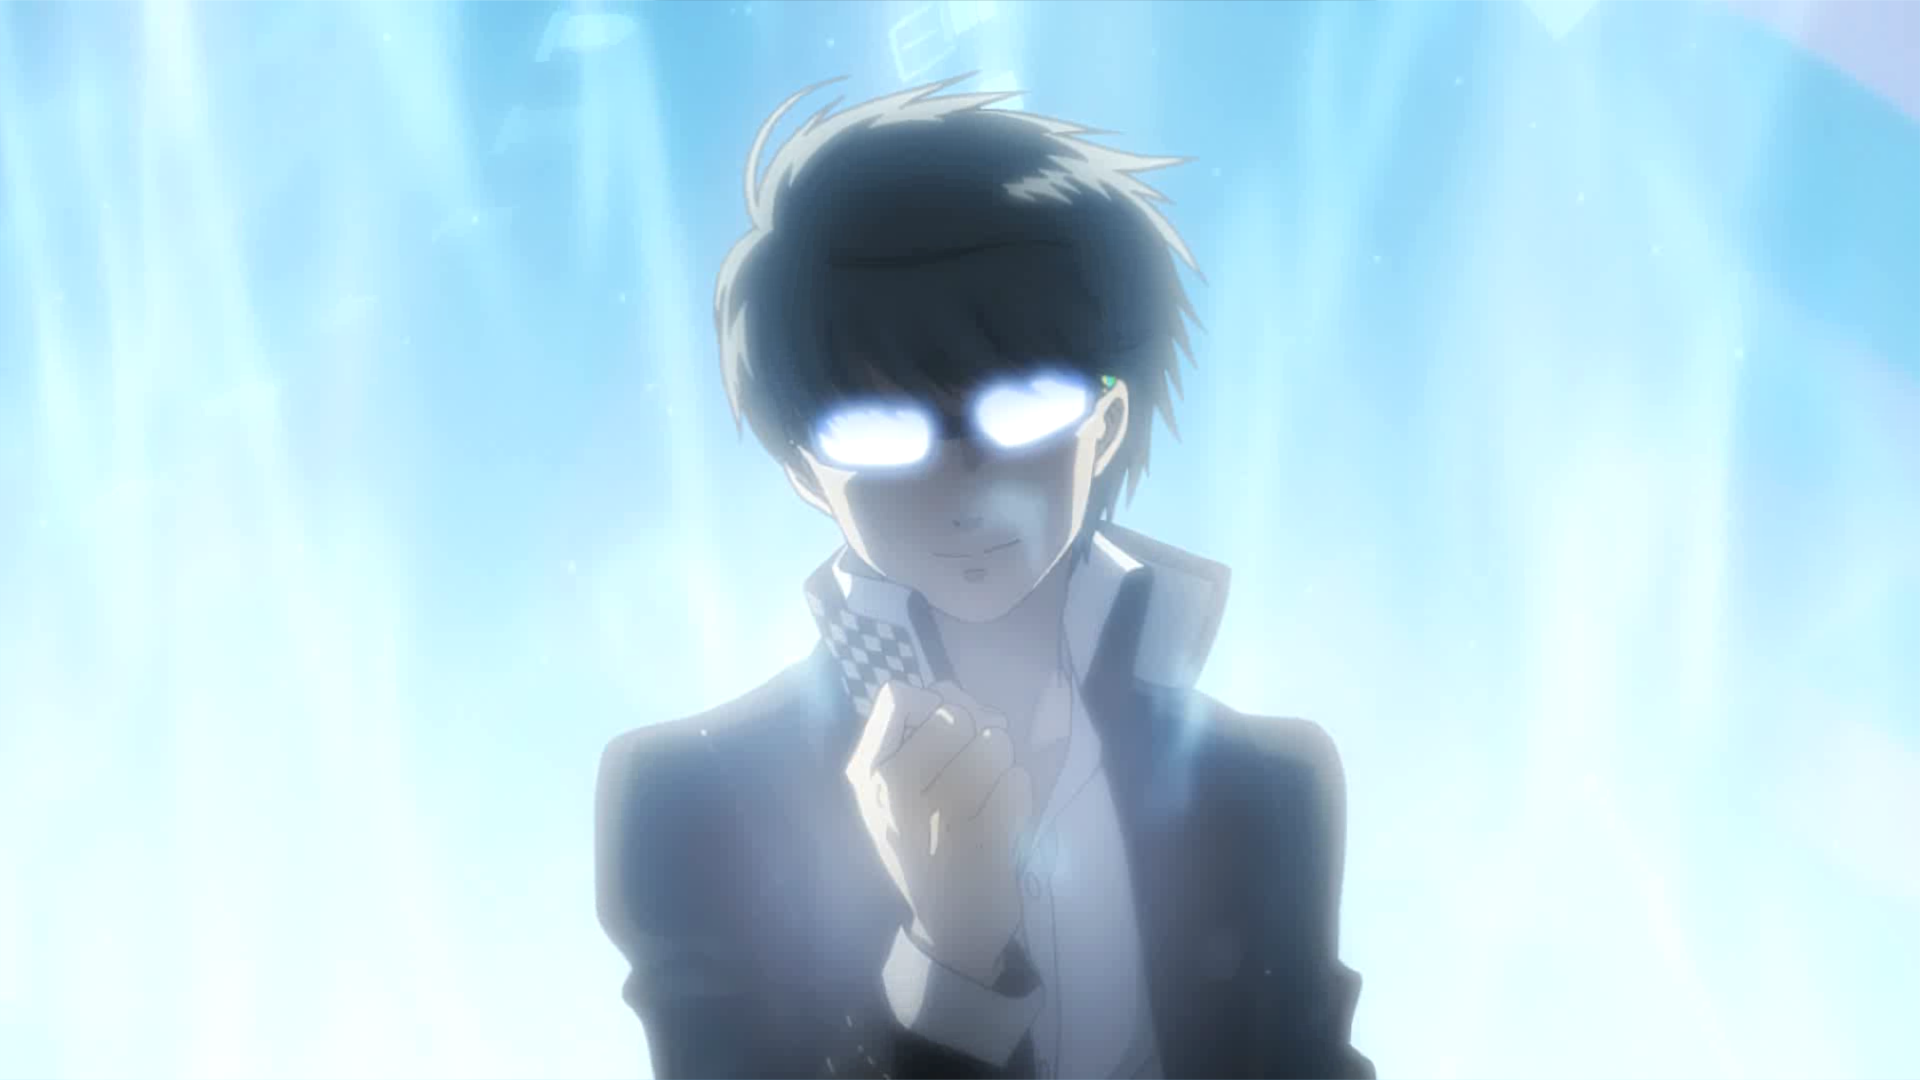 Persona 4 Golden's main character is bathed in light